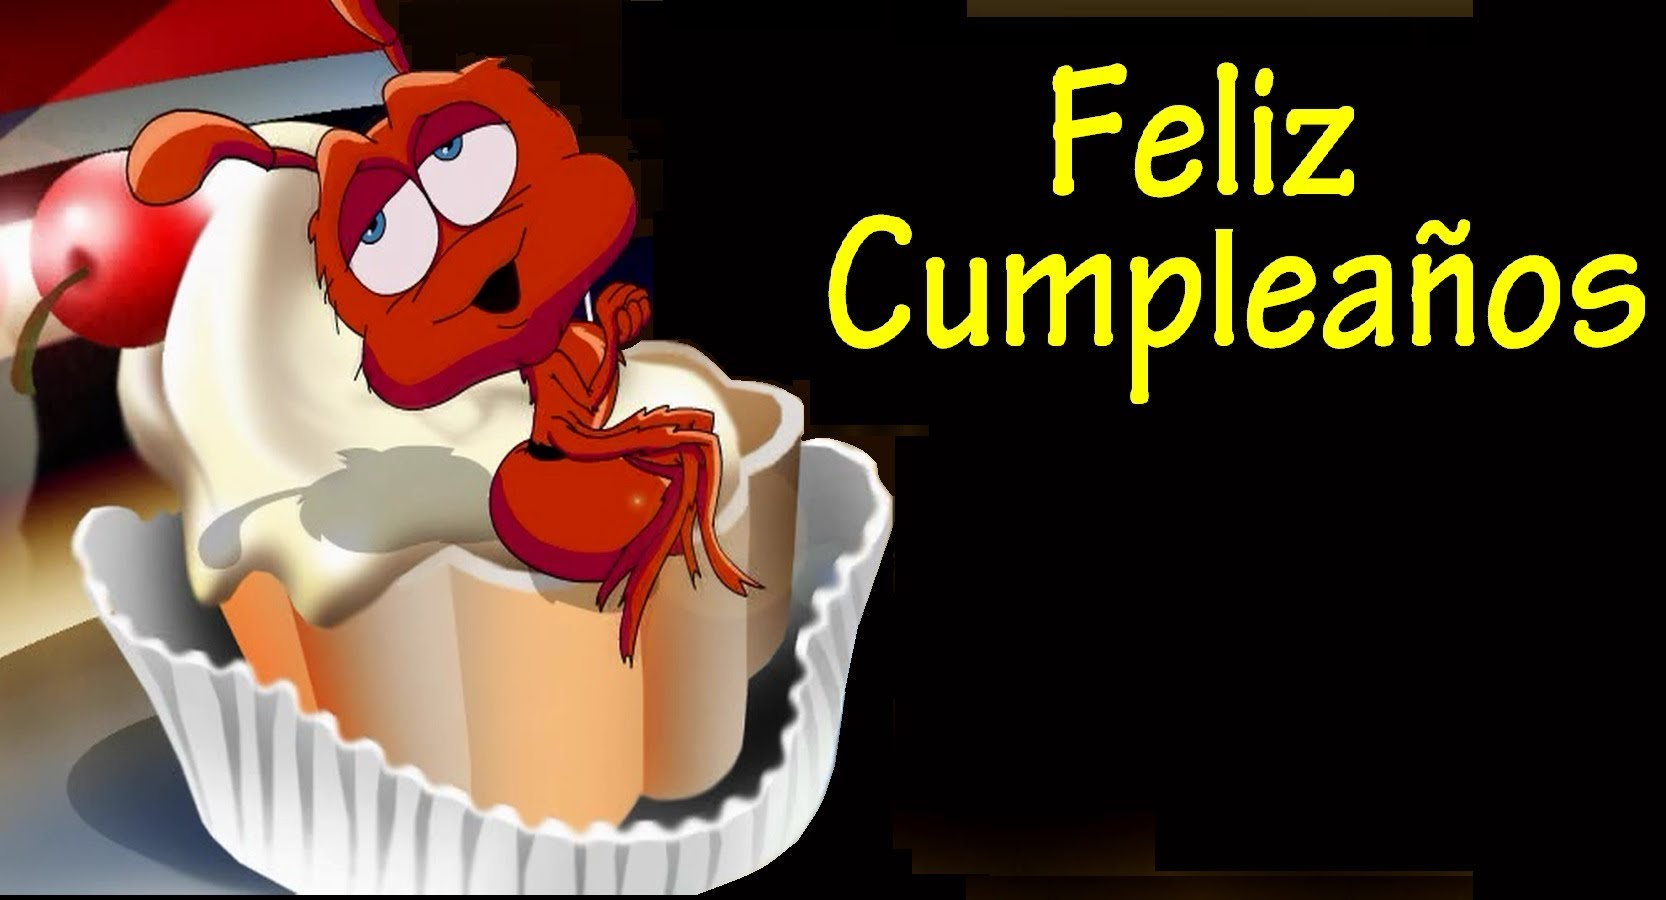 Feliz Cumpleanos Video Animado.Videos De Cumpleanos